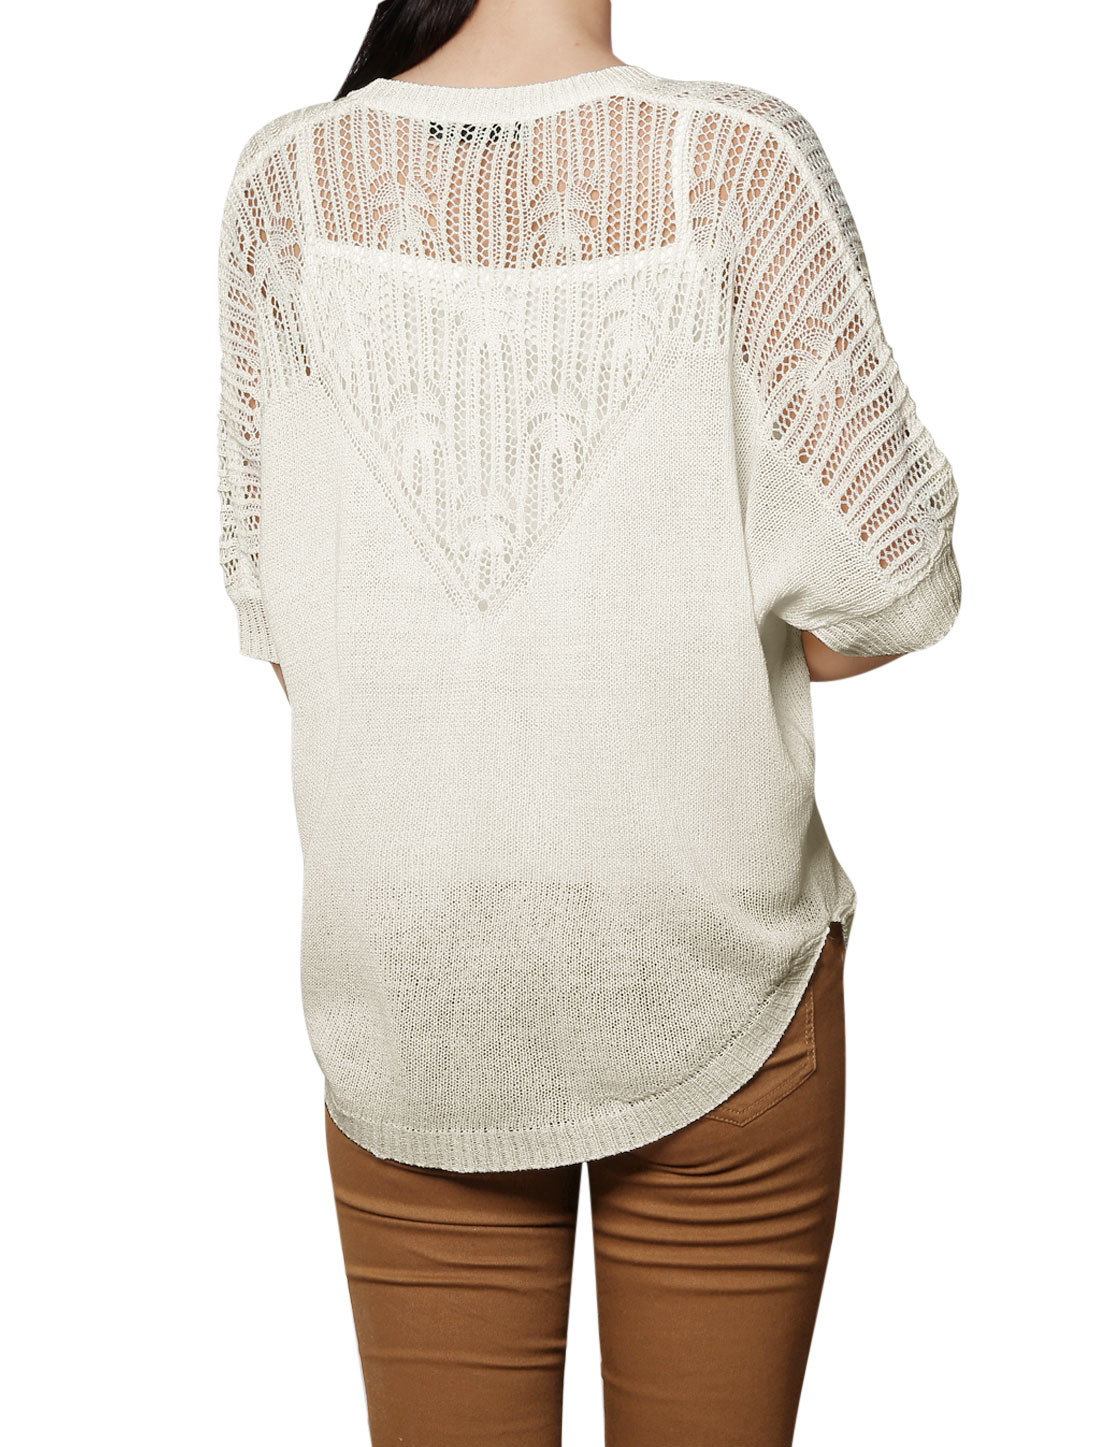 Unique Bargains Women's Hollow Out Upper Short Batwing Sleeves Pullover Sweater White (Size S / 4)